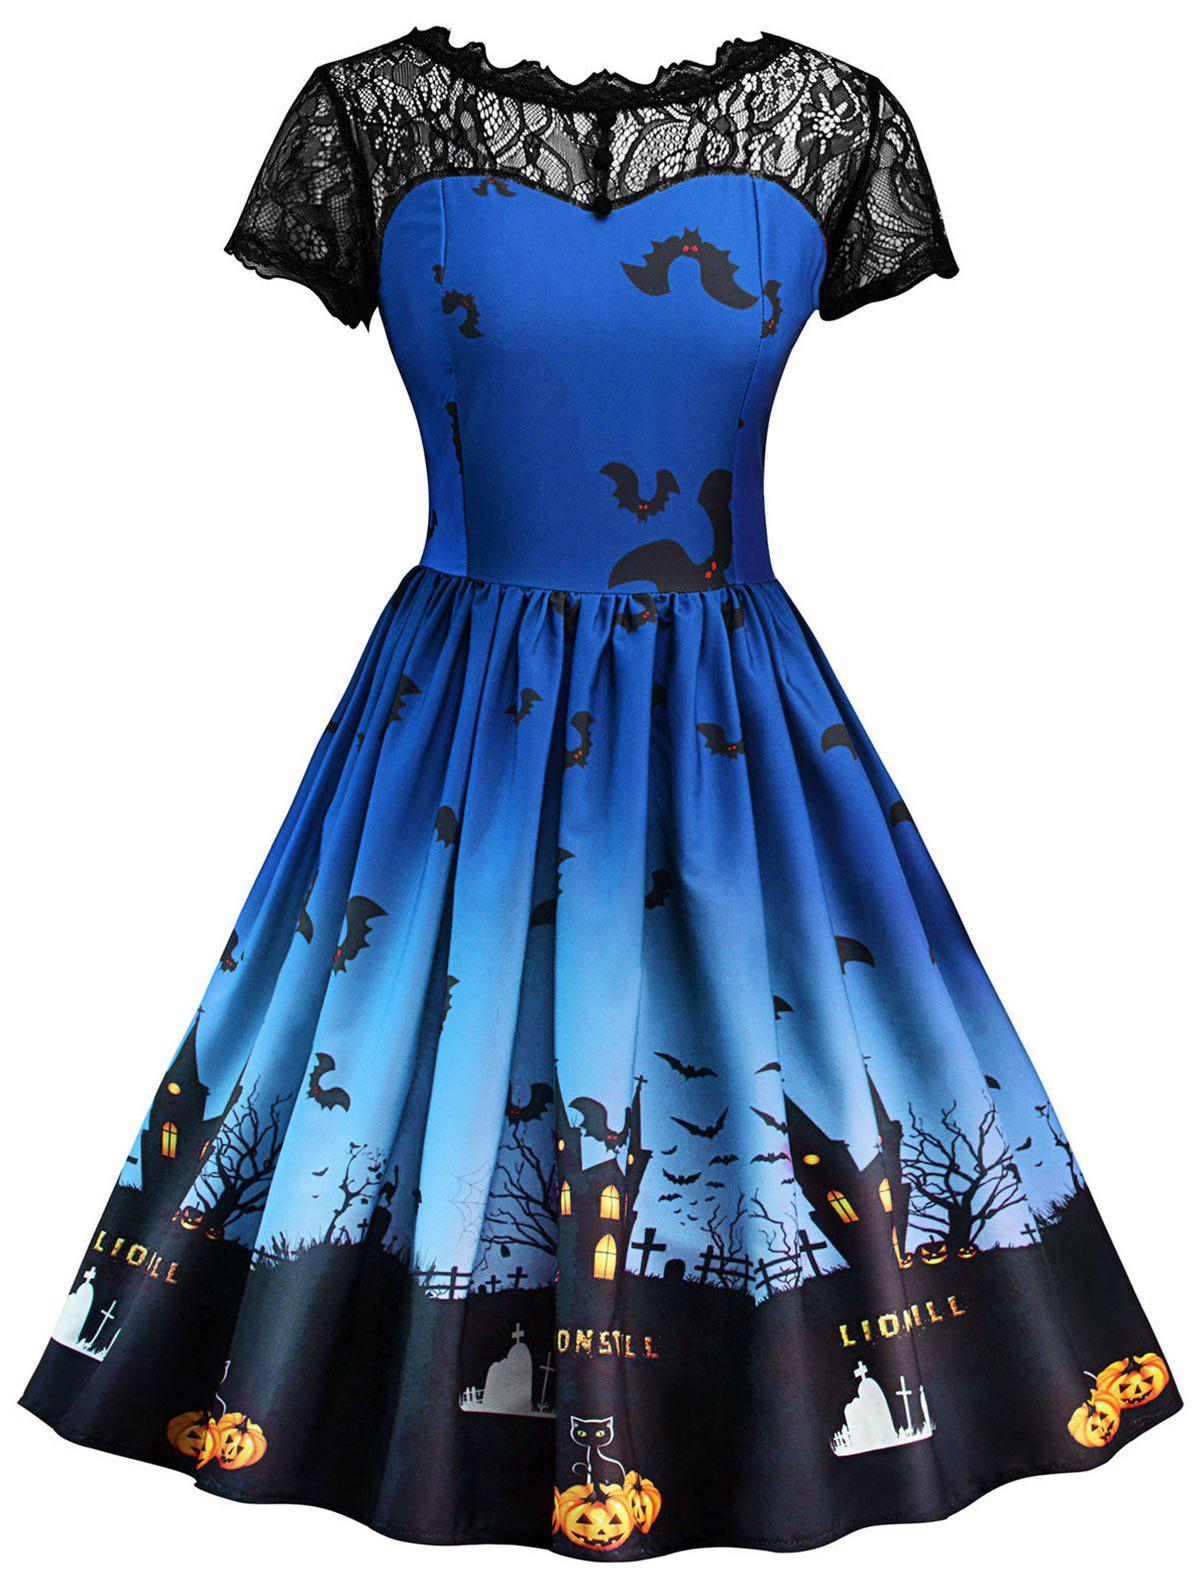 Vintage Lace Insert Halloween DressWOMEN<br><br>Size: 2XL; Color: ROYAL BLUE; Style: Vintage; Material: Cotton,Polyester; Silhouette: A-Line; Dress Type: Fit and Flare Dress,Skater Dress,Swing Dress; Dresses Length: Knee-Length; Neckline: Round Collar; Sleeve Length: Short Sleeves; Pattern Type: Patchwork,Print; With Belt: No; Season: Fall,Spring; Weight: 0.4000kg; Package Contents: 1 x Dress;